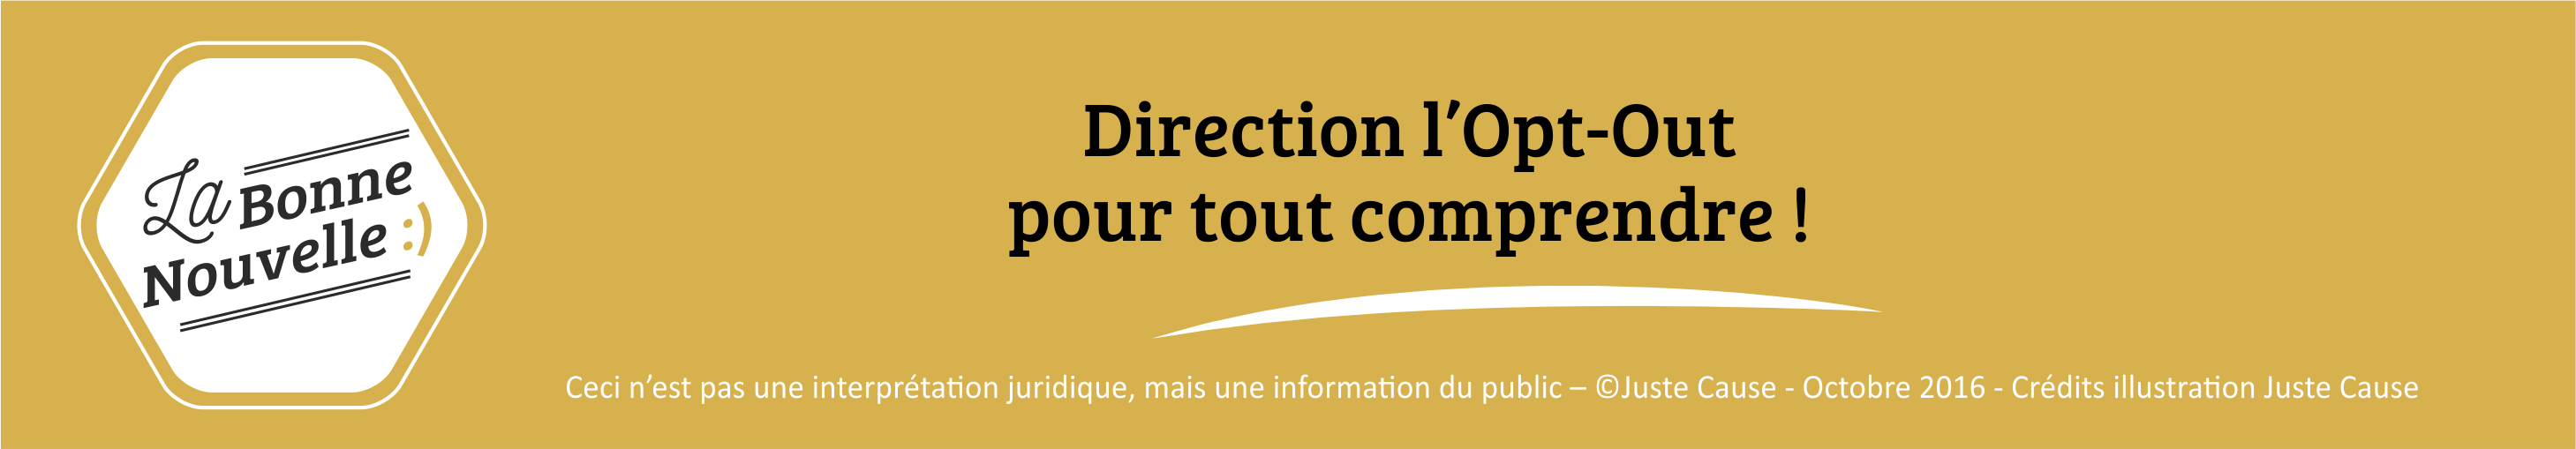 infographie juridique Juste Cause opt in